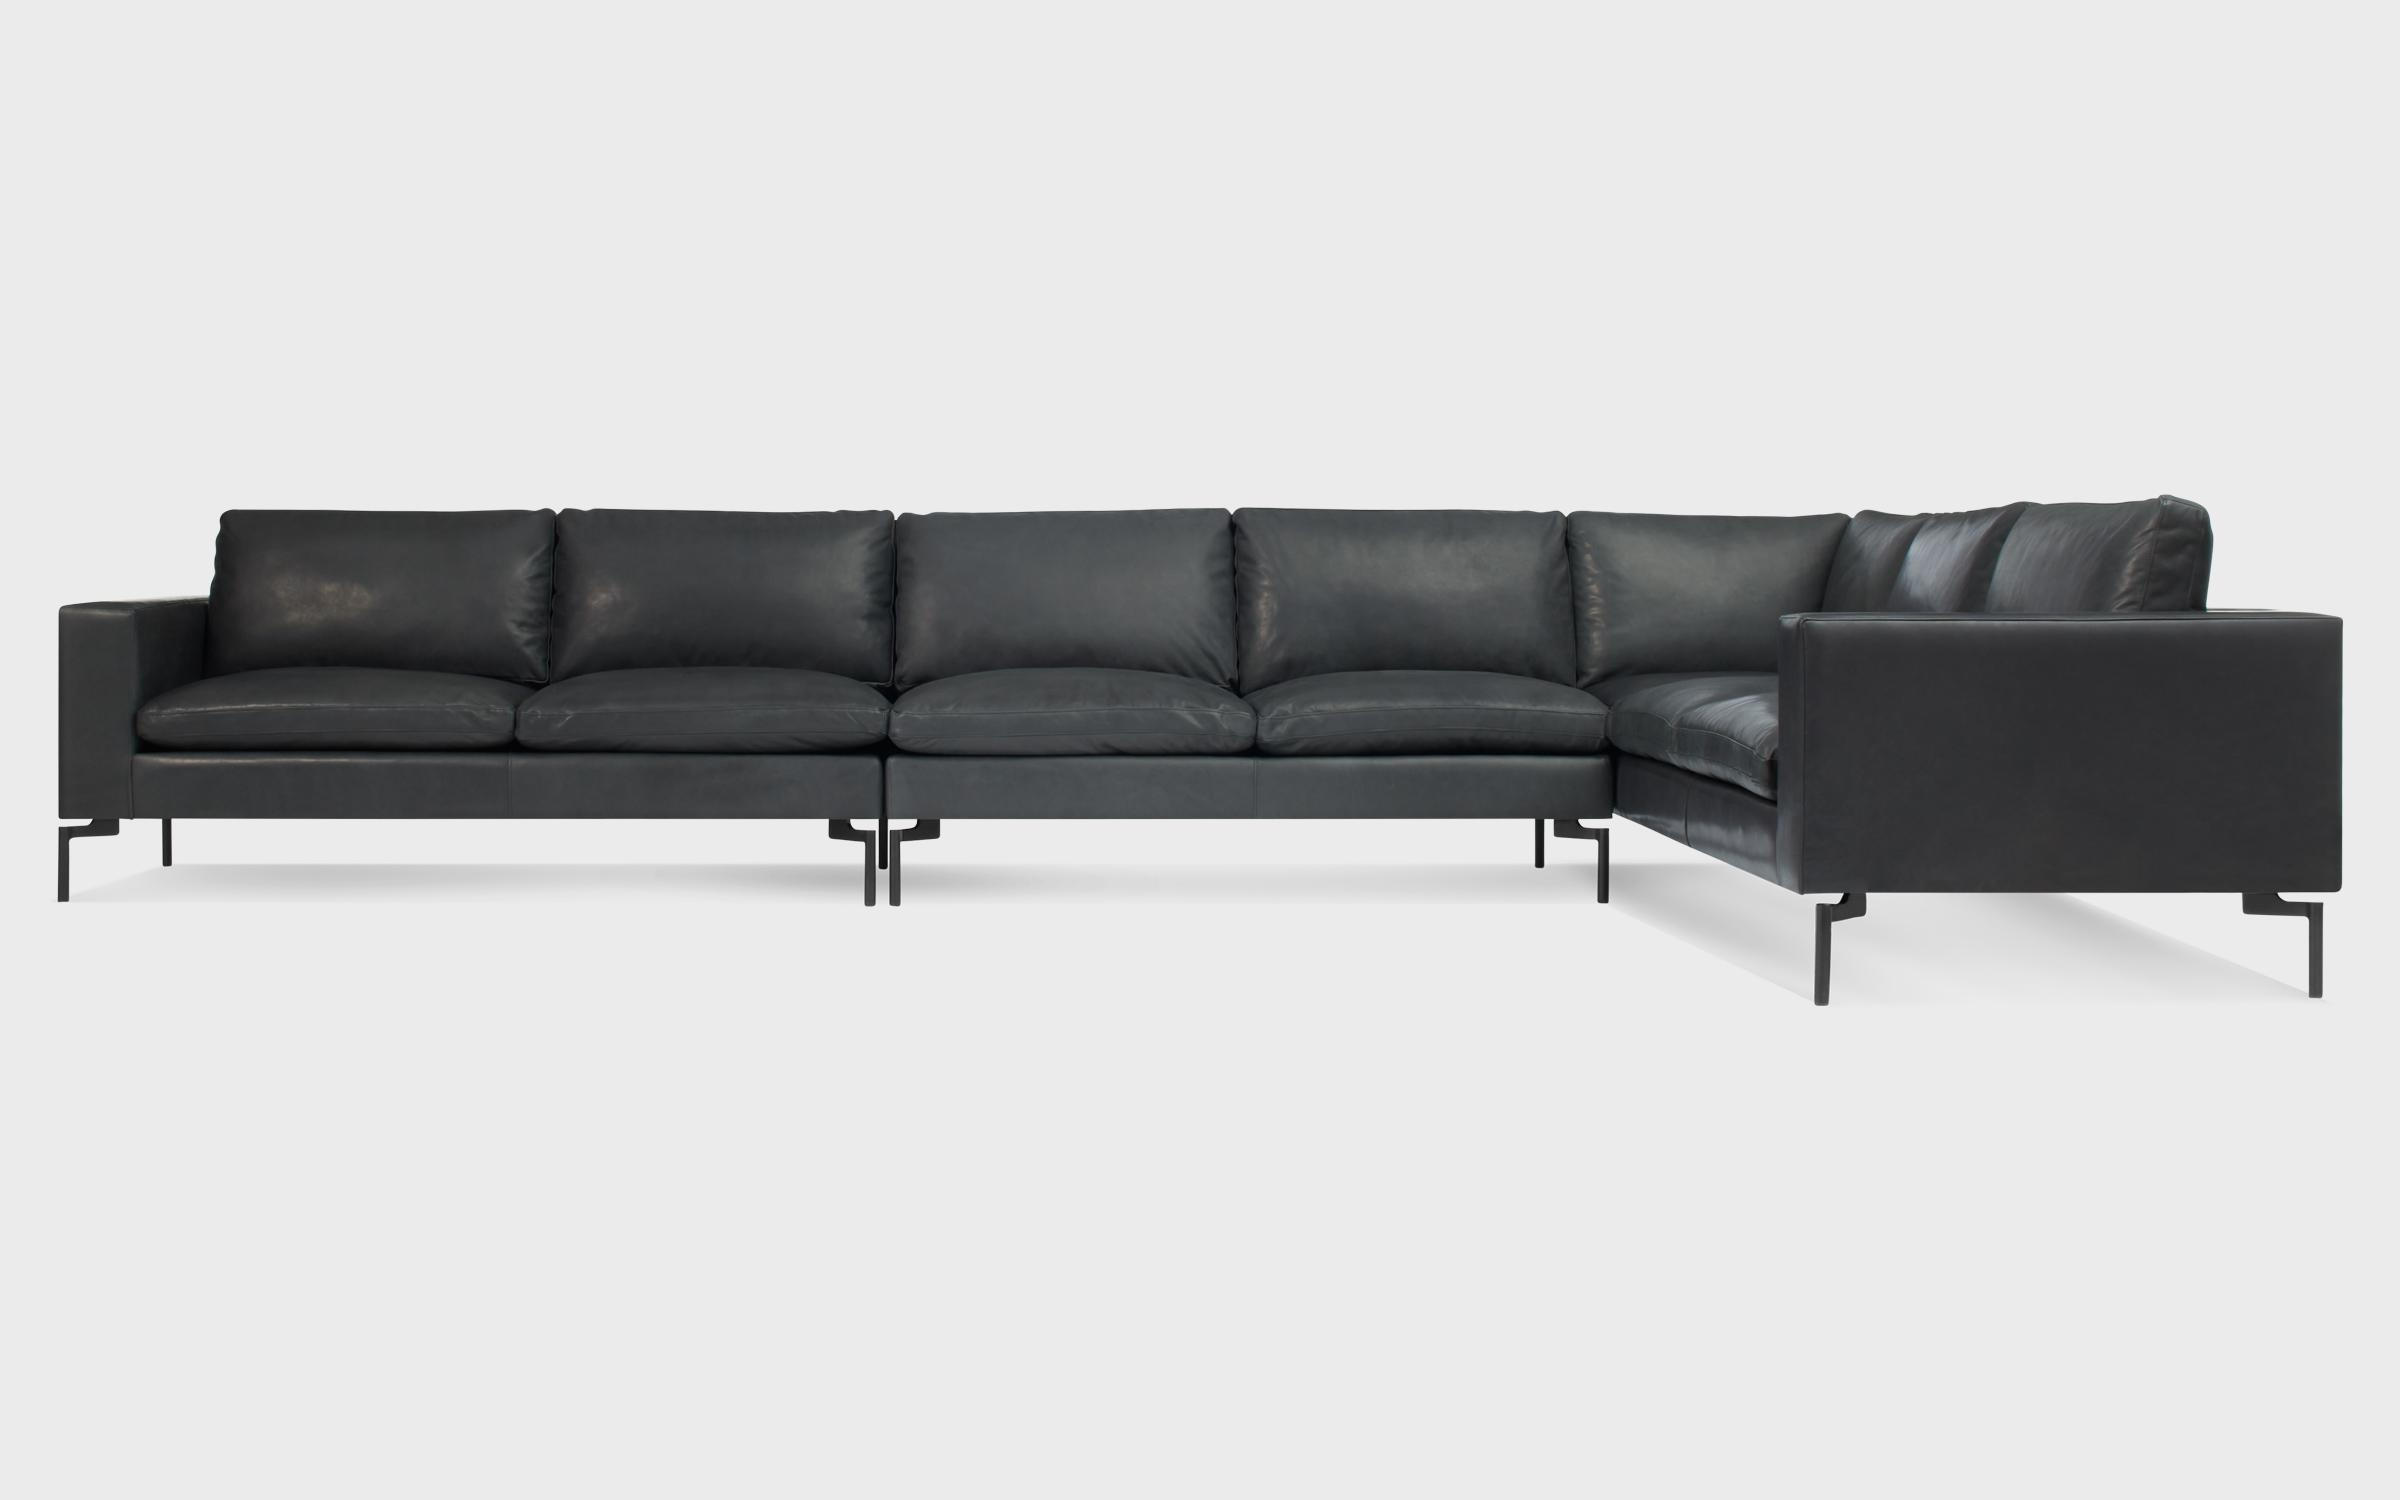 New Standard Large Leather Right Sectional Sofa | Blu Dot Pertaining To High Quality Leather Sectional (View 20 of 20)